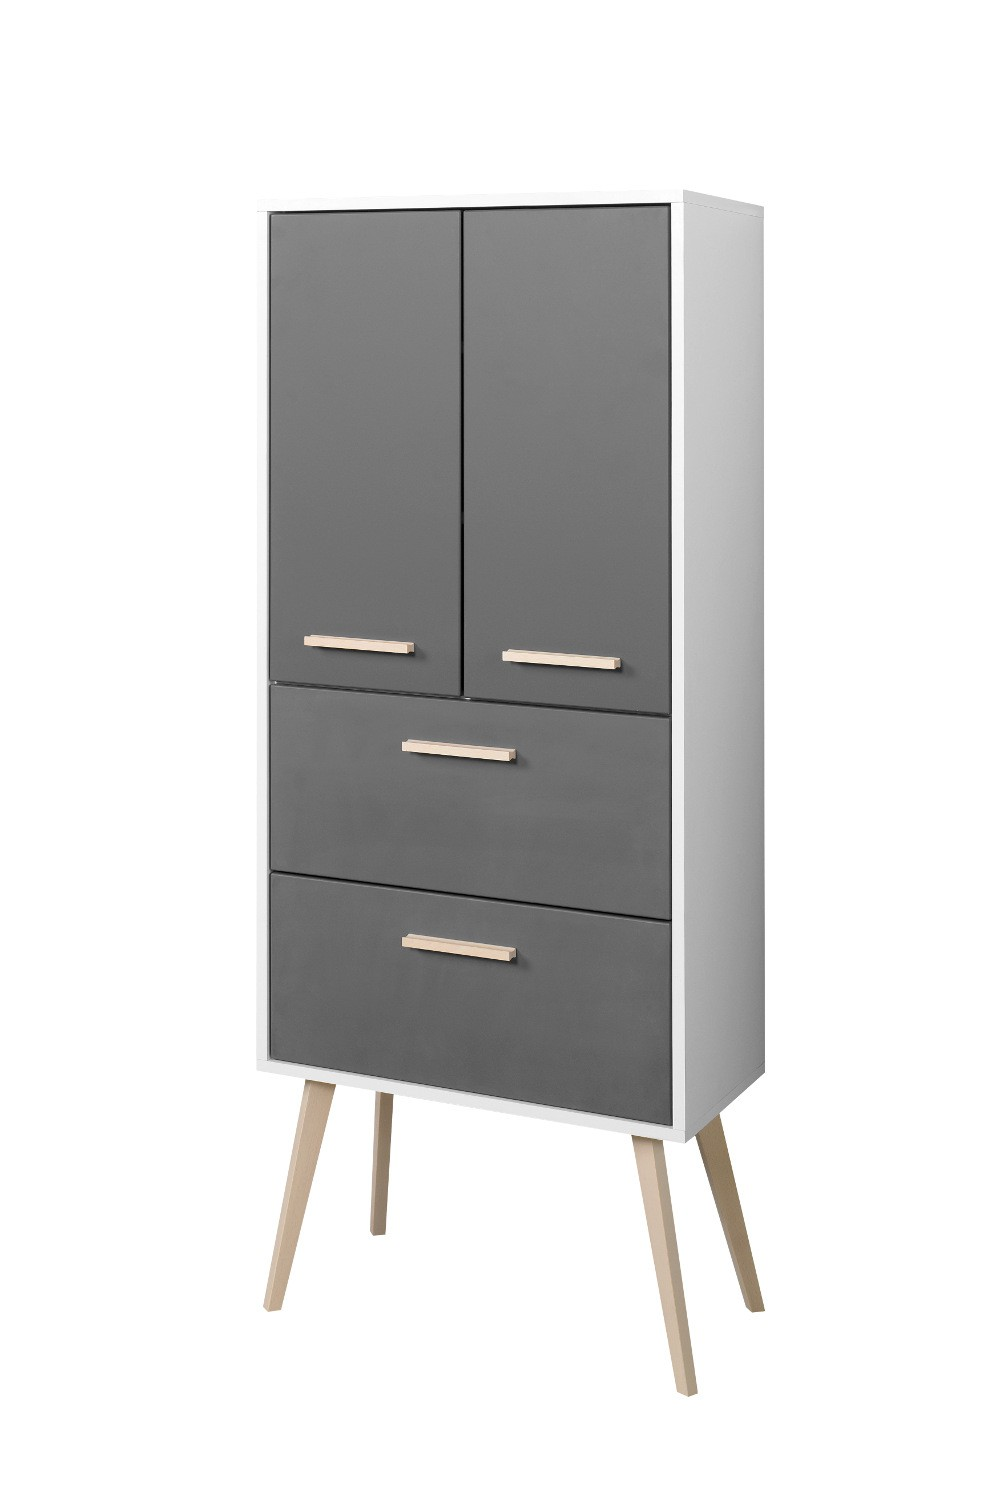 Badezimmer Midischrank Excellent Medium Size Of